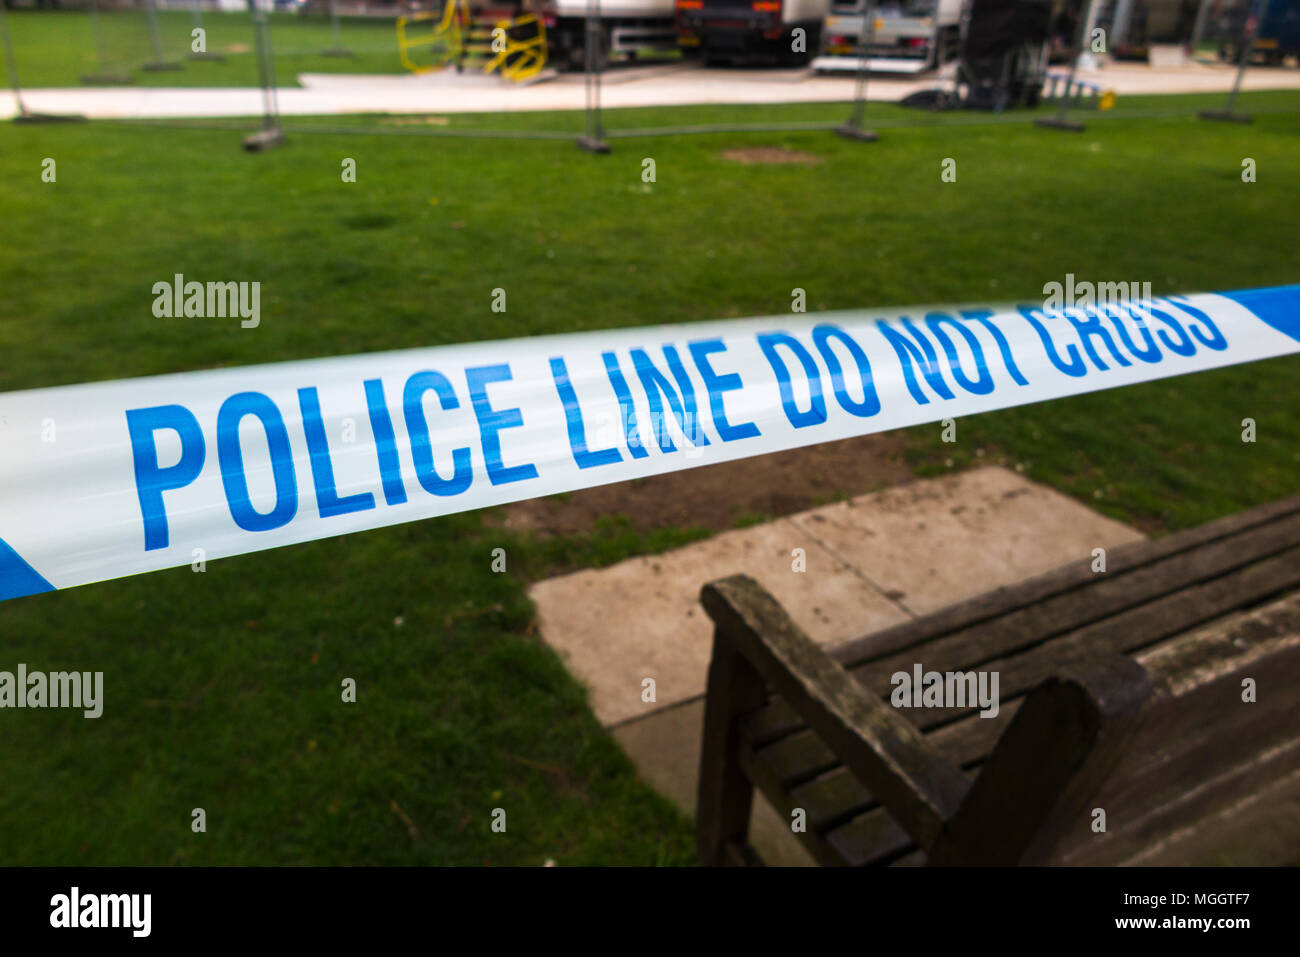 Police Line Do Not Cross tape barrier, typically placed around a crime scene by police officers or scene of crime officer / crimes officers. UK. (96) - Stock Image